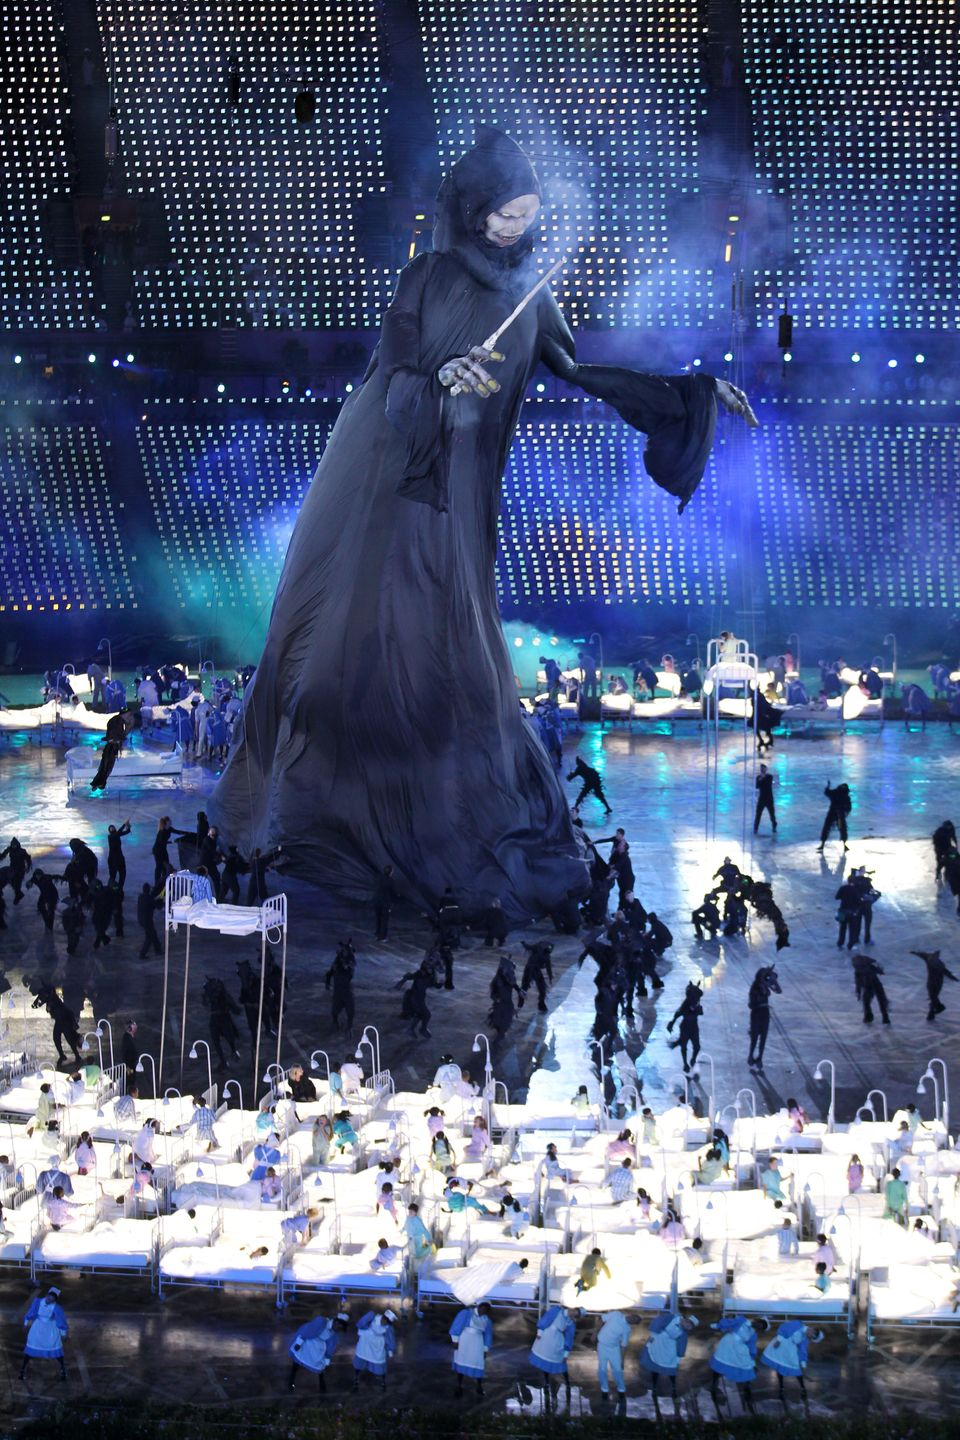 The 2012 Olympics Opening Ceremony Is Still A Heart-Swelling, Lump-In-The-Throat